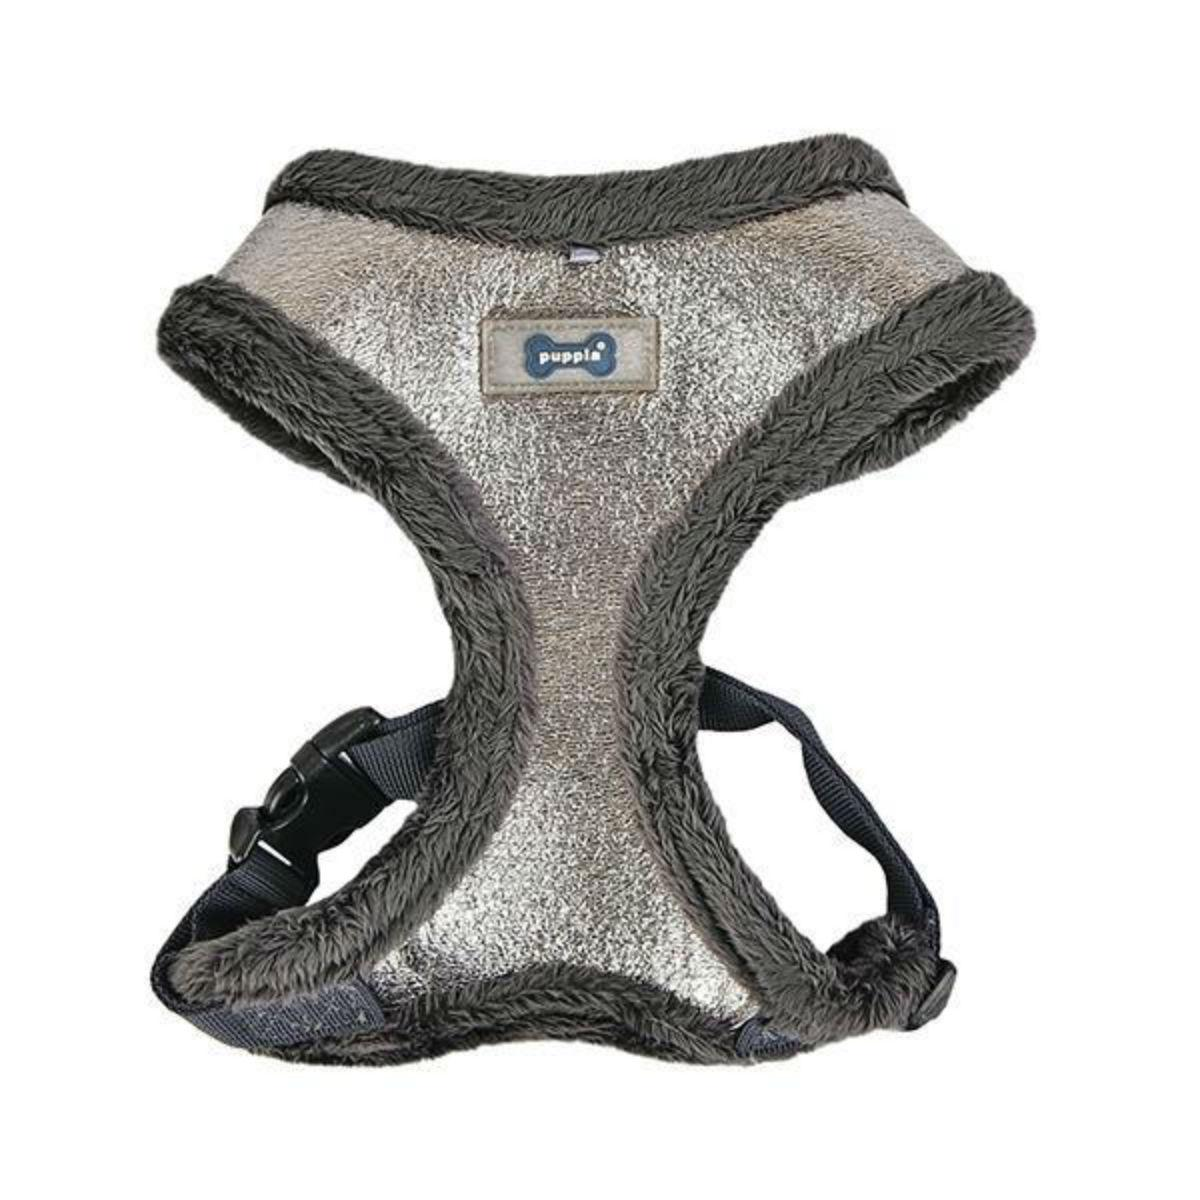 Evon Basic Style Dog Harness by Puppia - Silver